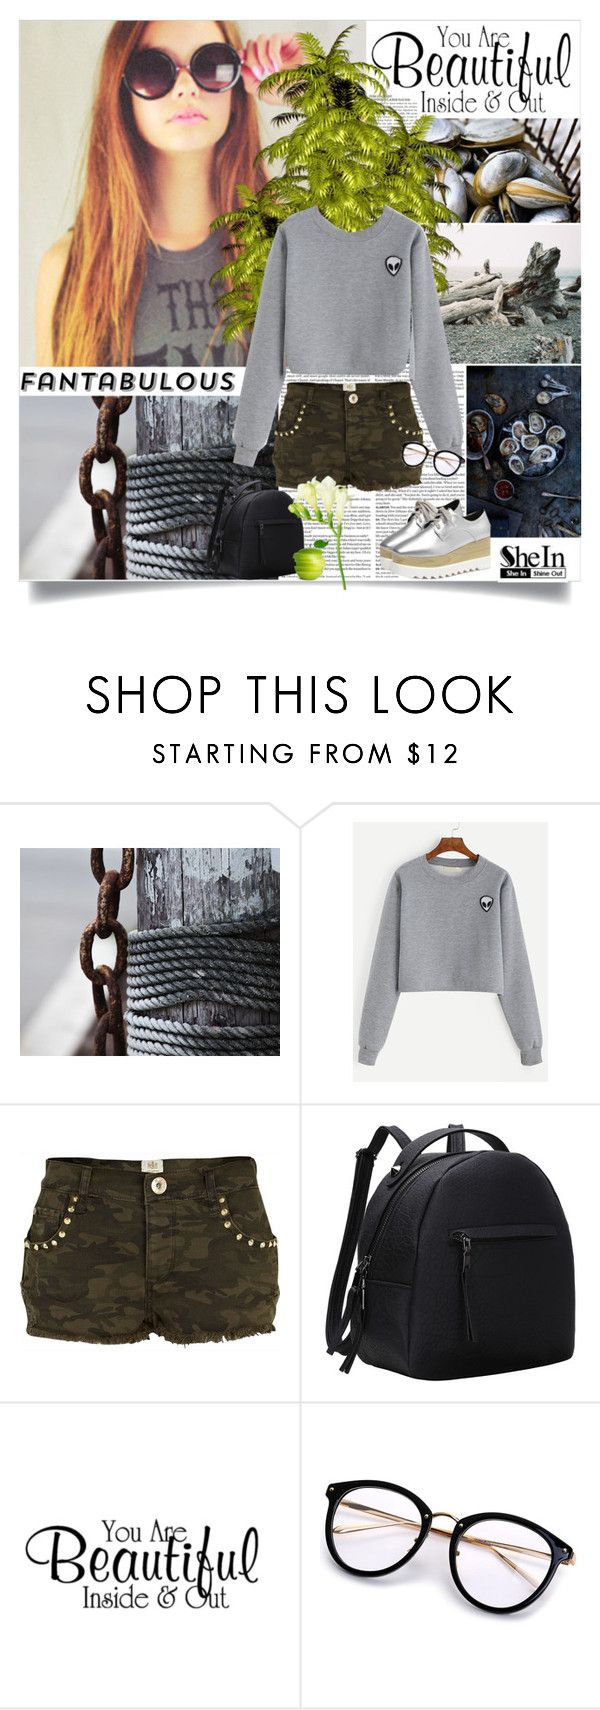 Shein by reka97 on Polyvore featuring River Island